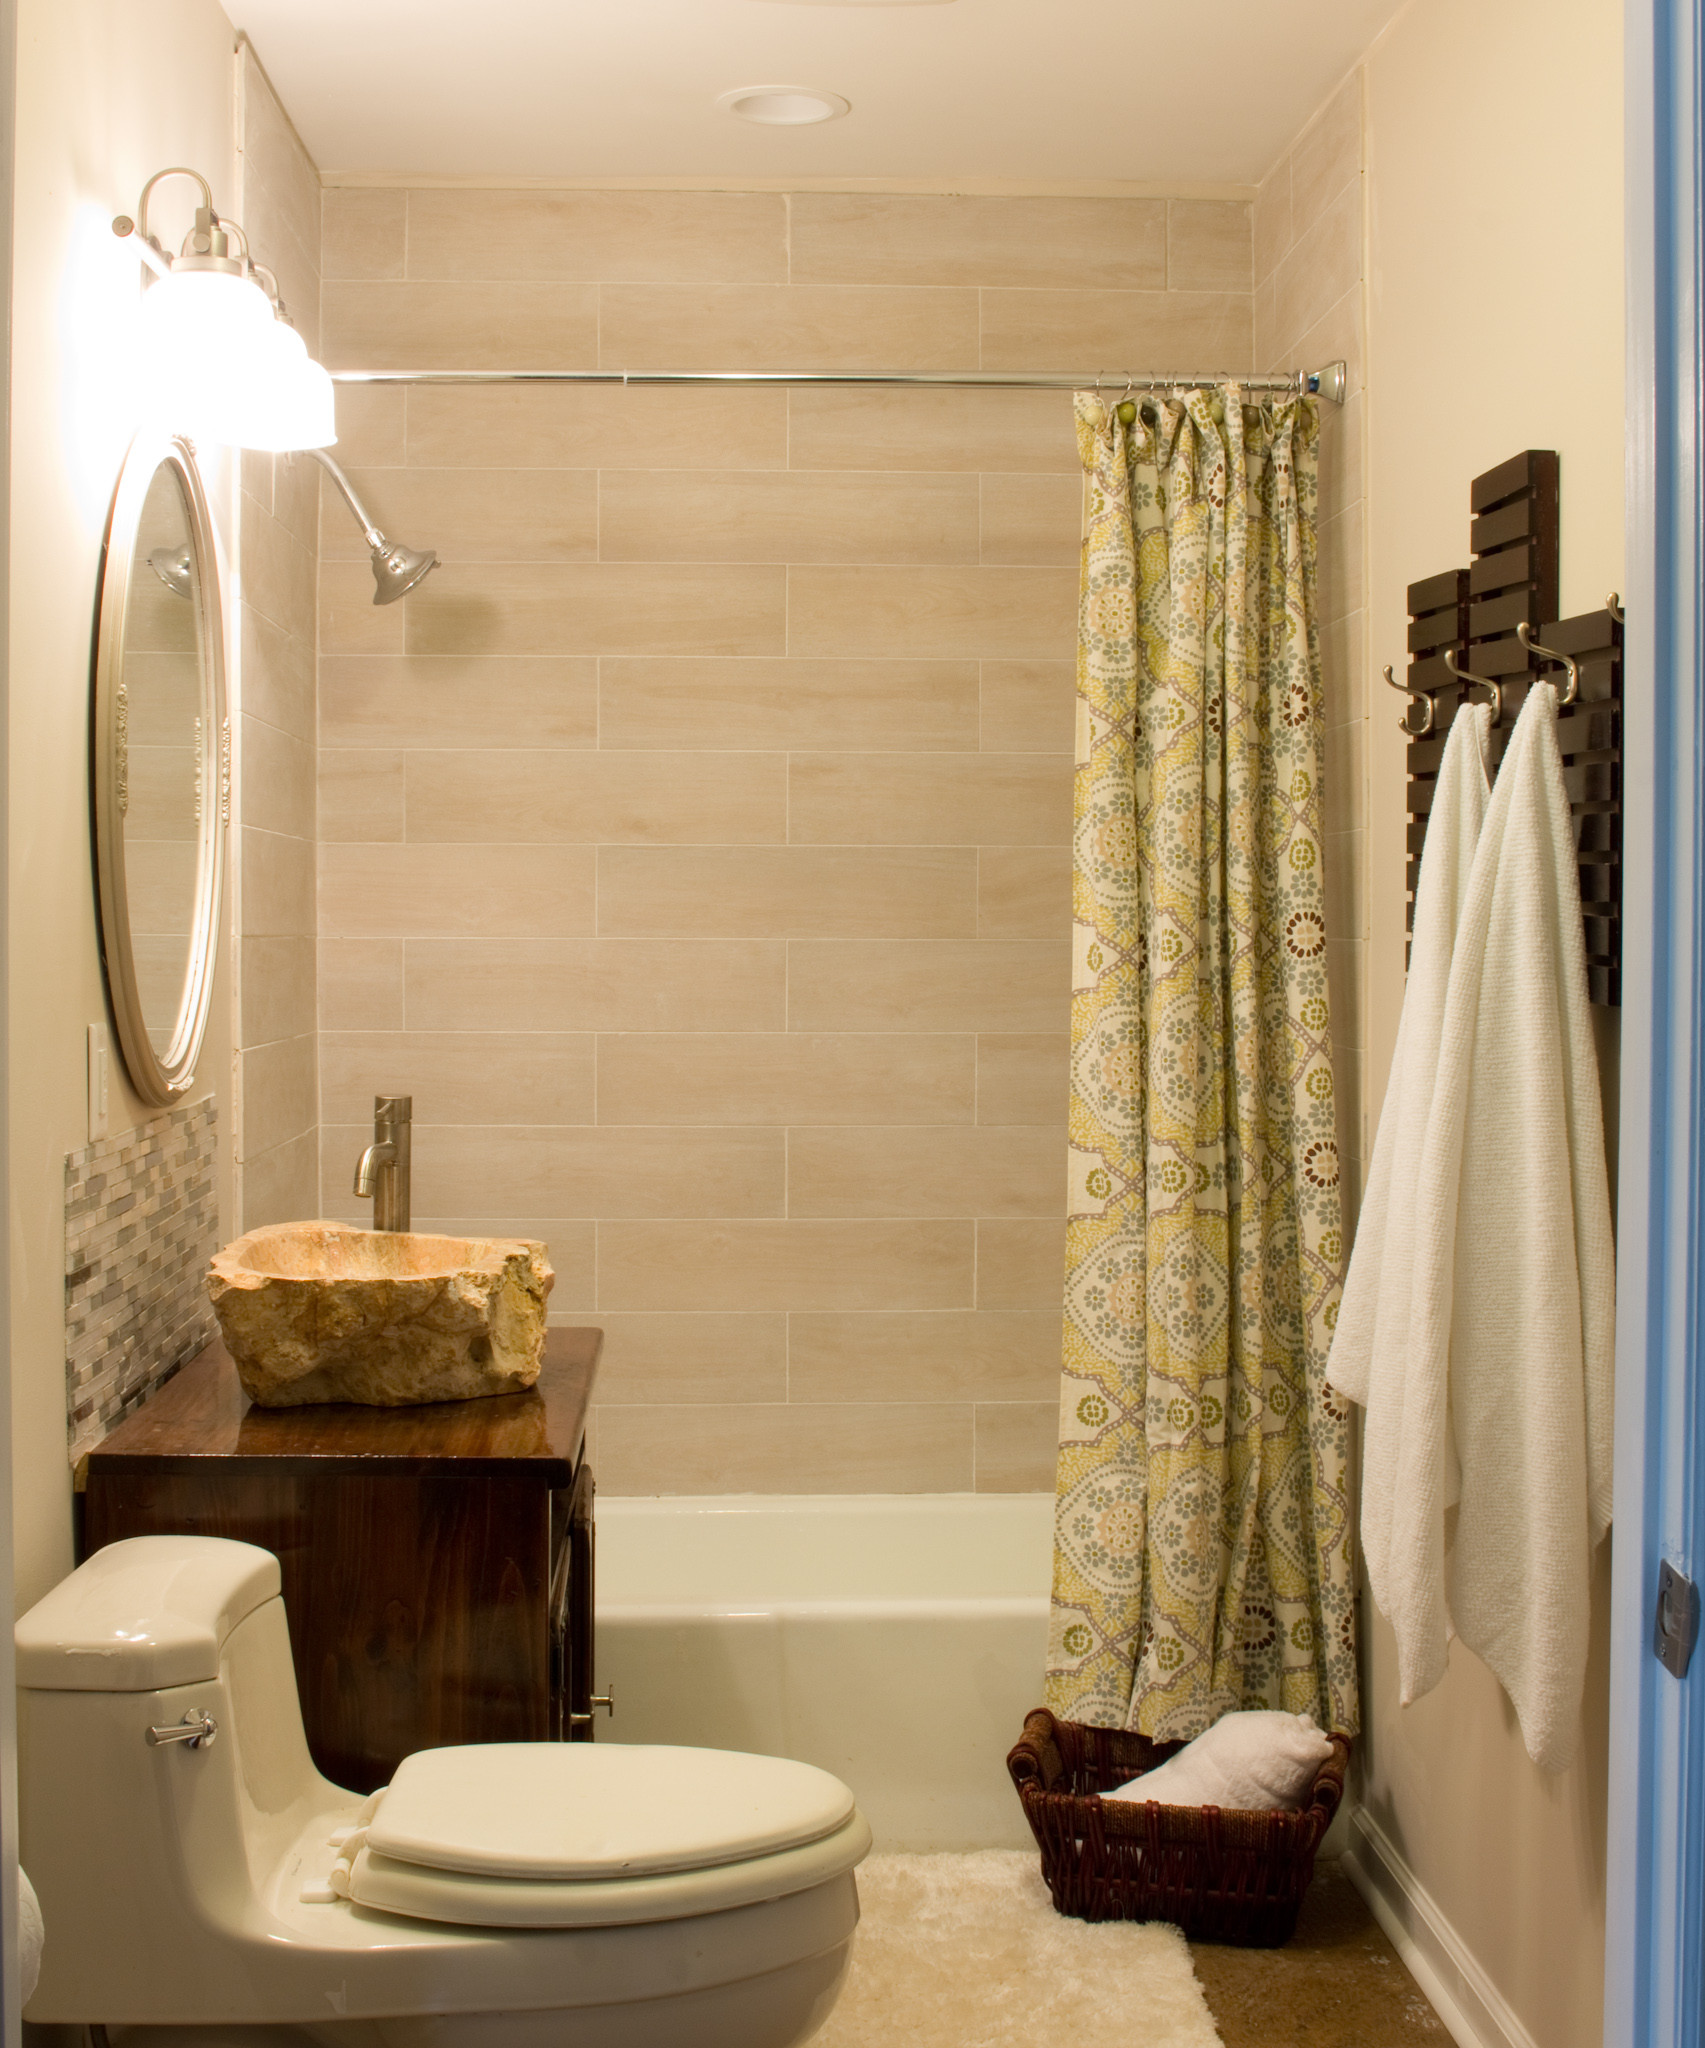 Best ideas about DIY Towel Rack . Save or Pin DIY Towel Rack Made From Shelves Thrift Store Upcycle Now.